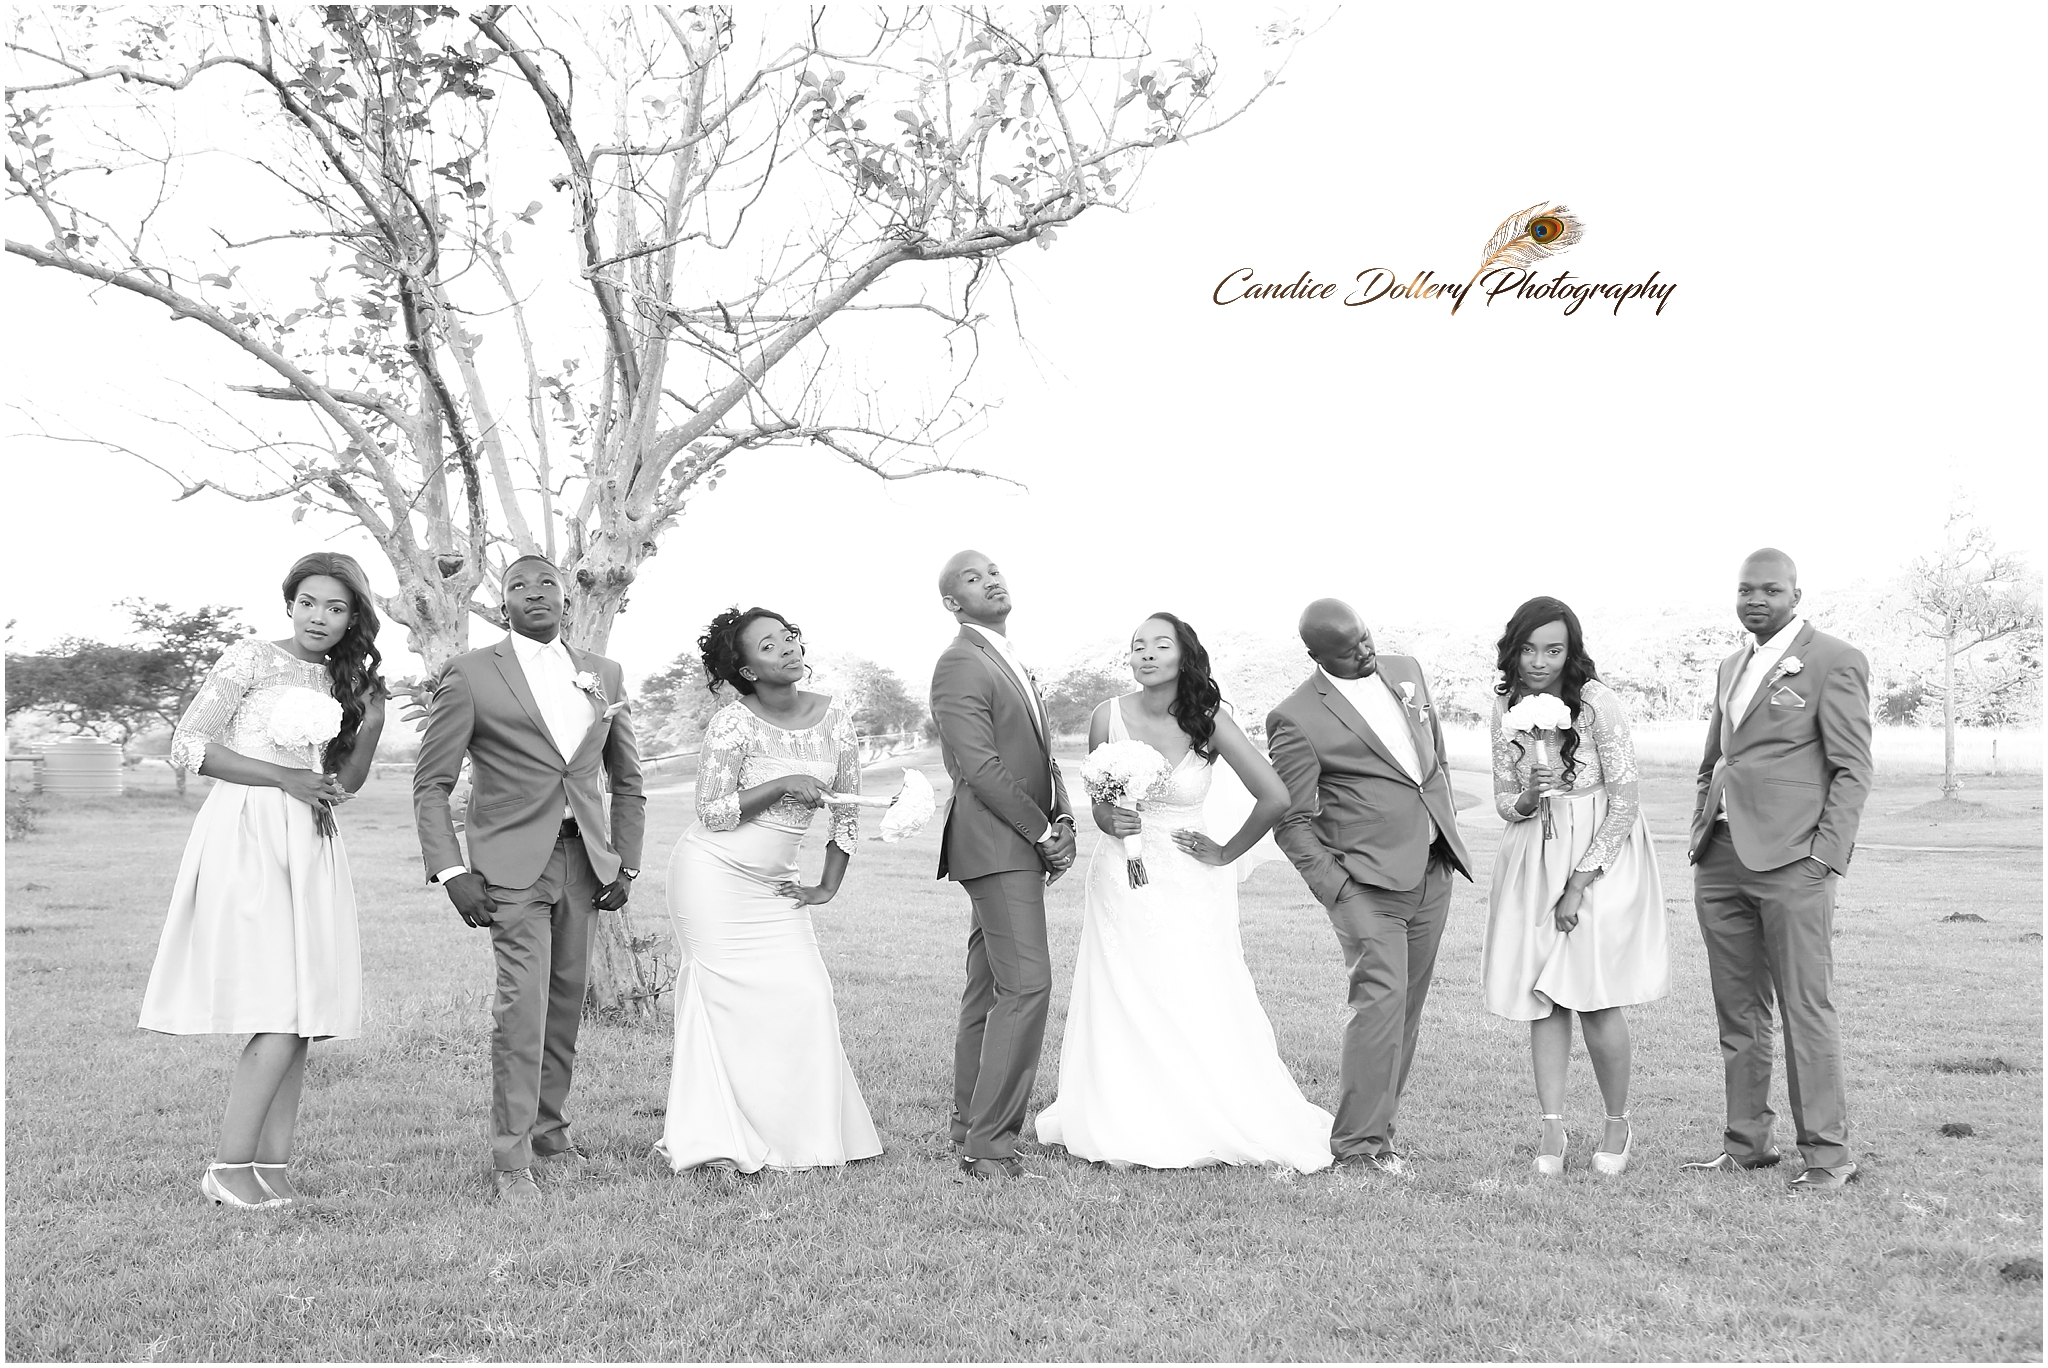 lelethu-kgotsos-wedding-candice-dollery-photography_1673